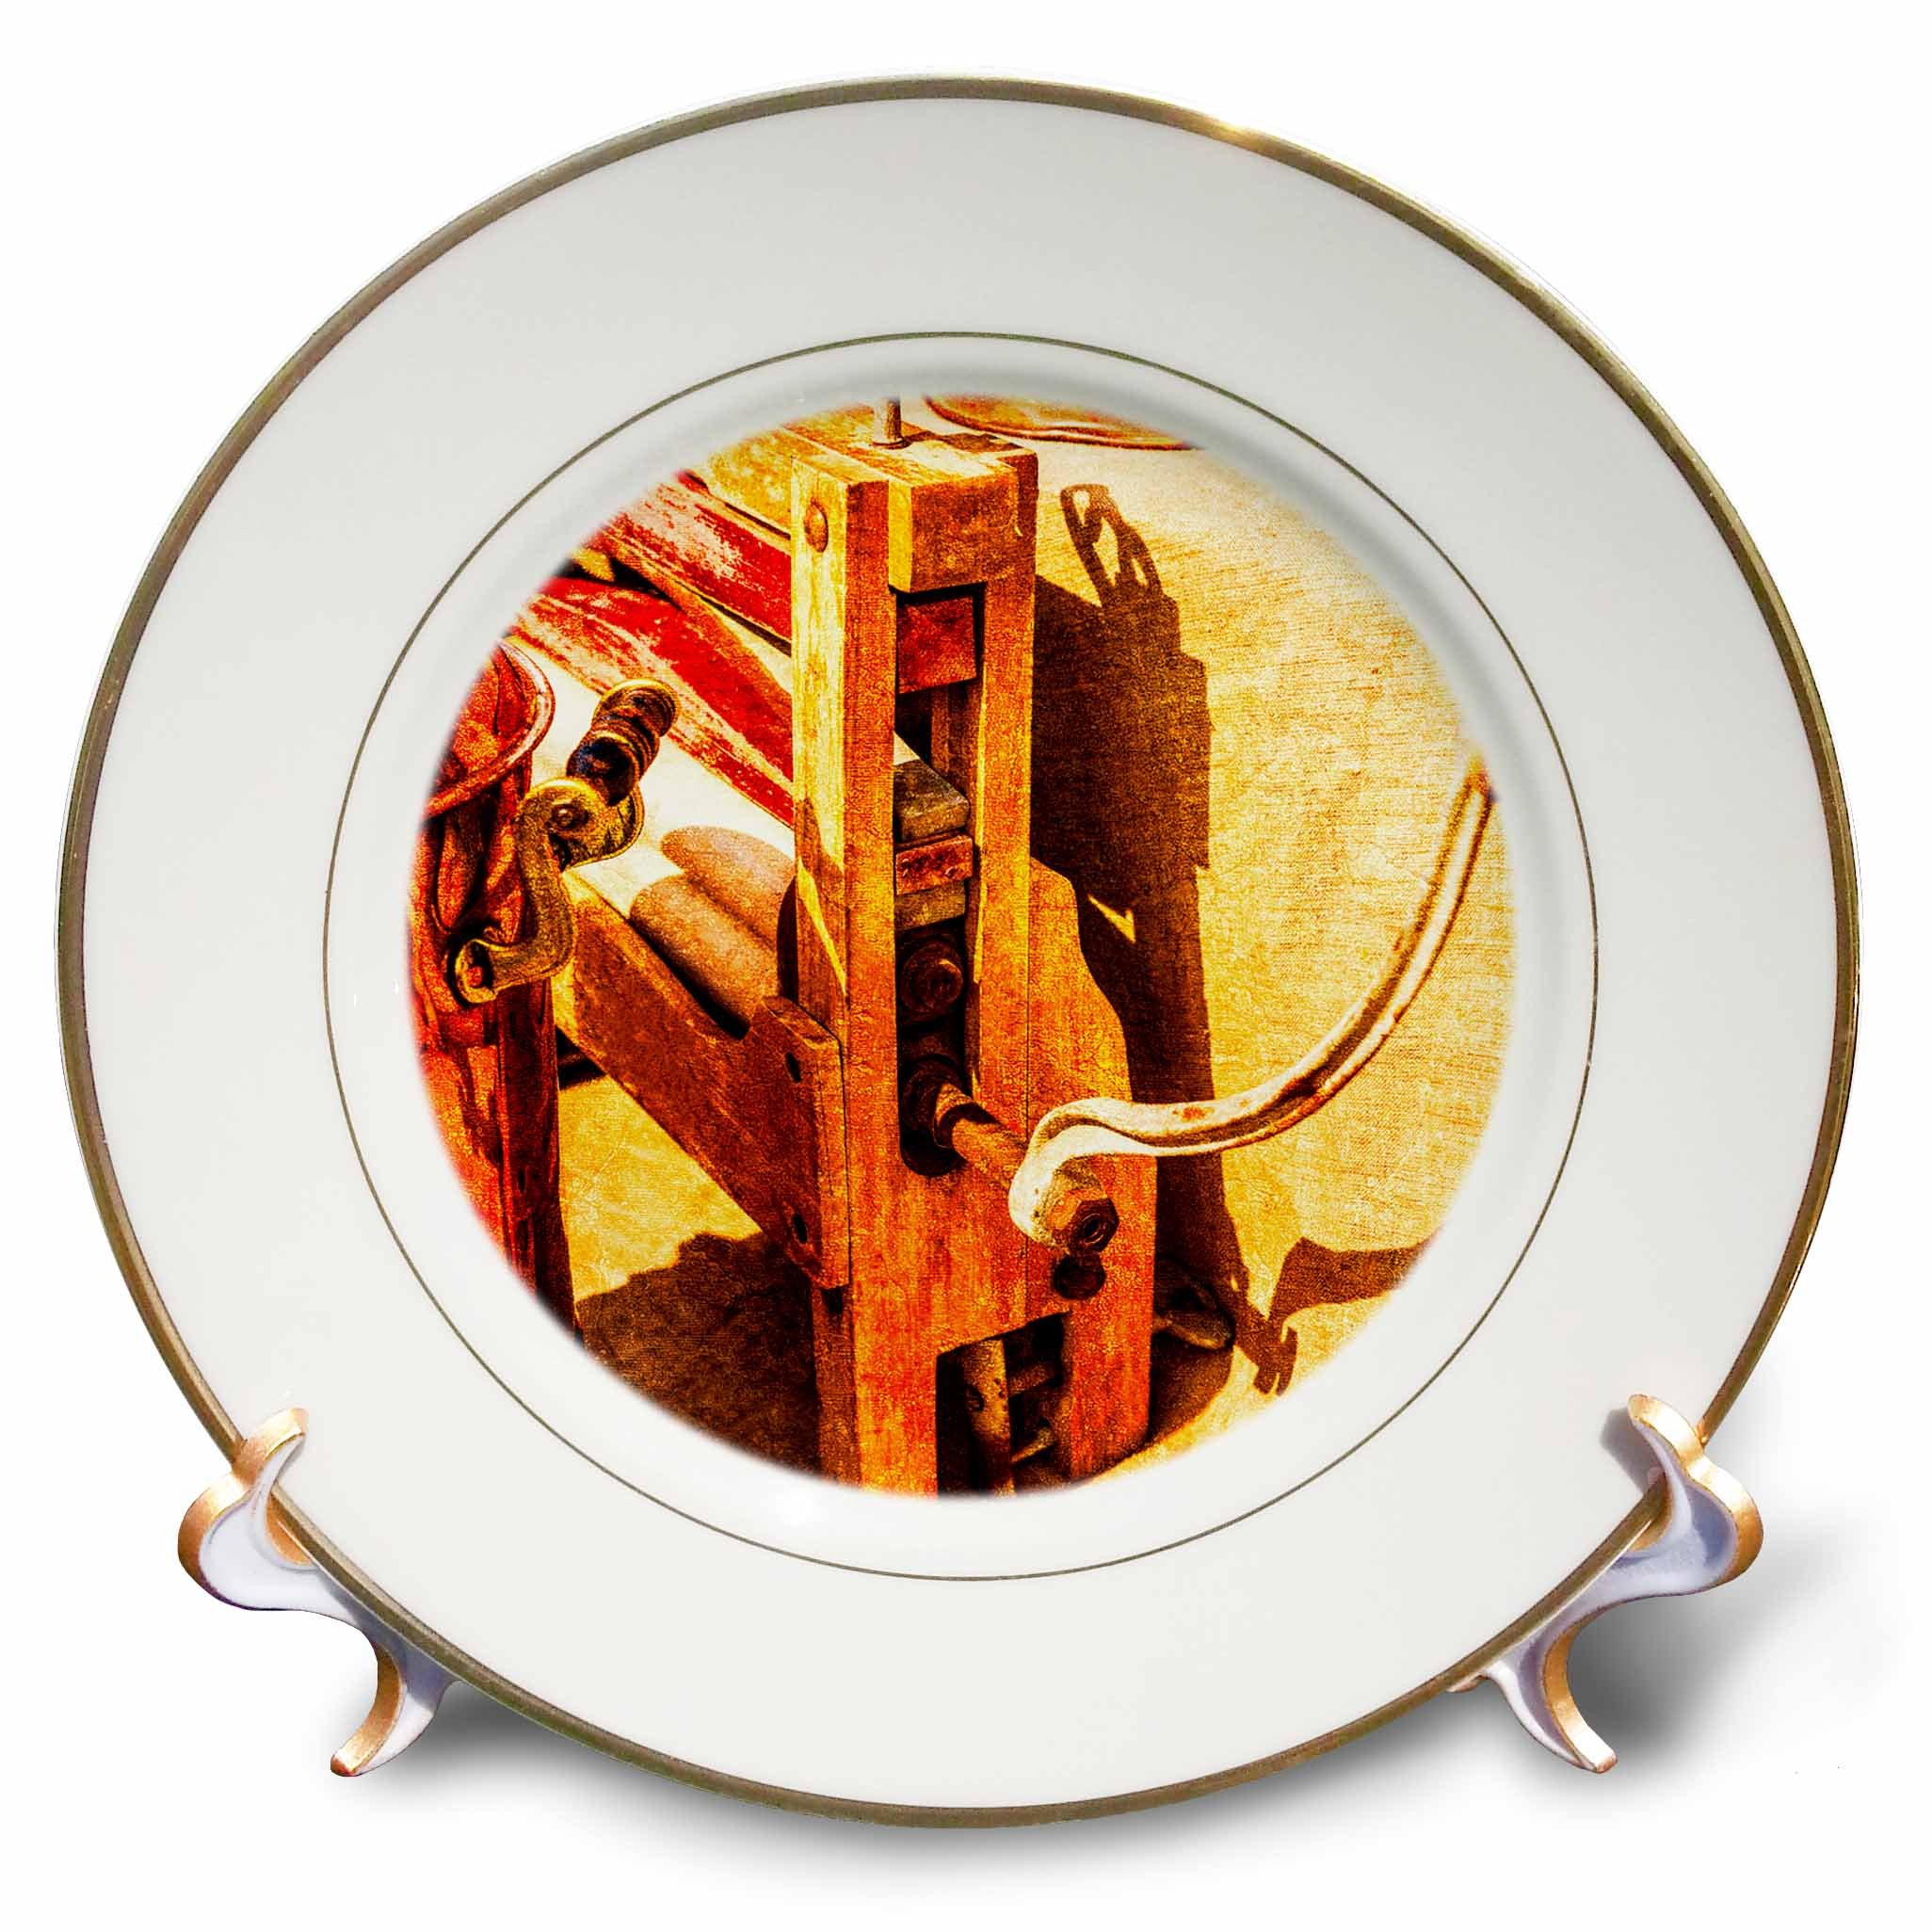 3dRose Alexis Photography - Objects - Golden age technologies - Vintage wringer. Stylized photo - 8 inch Porcelain Plate (cp_270868_1)